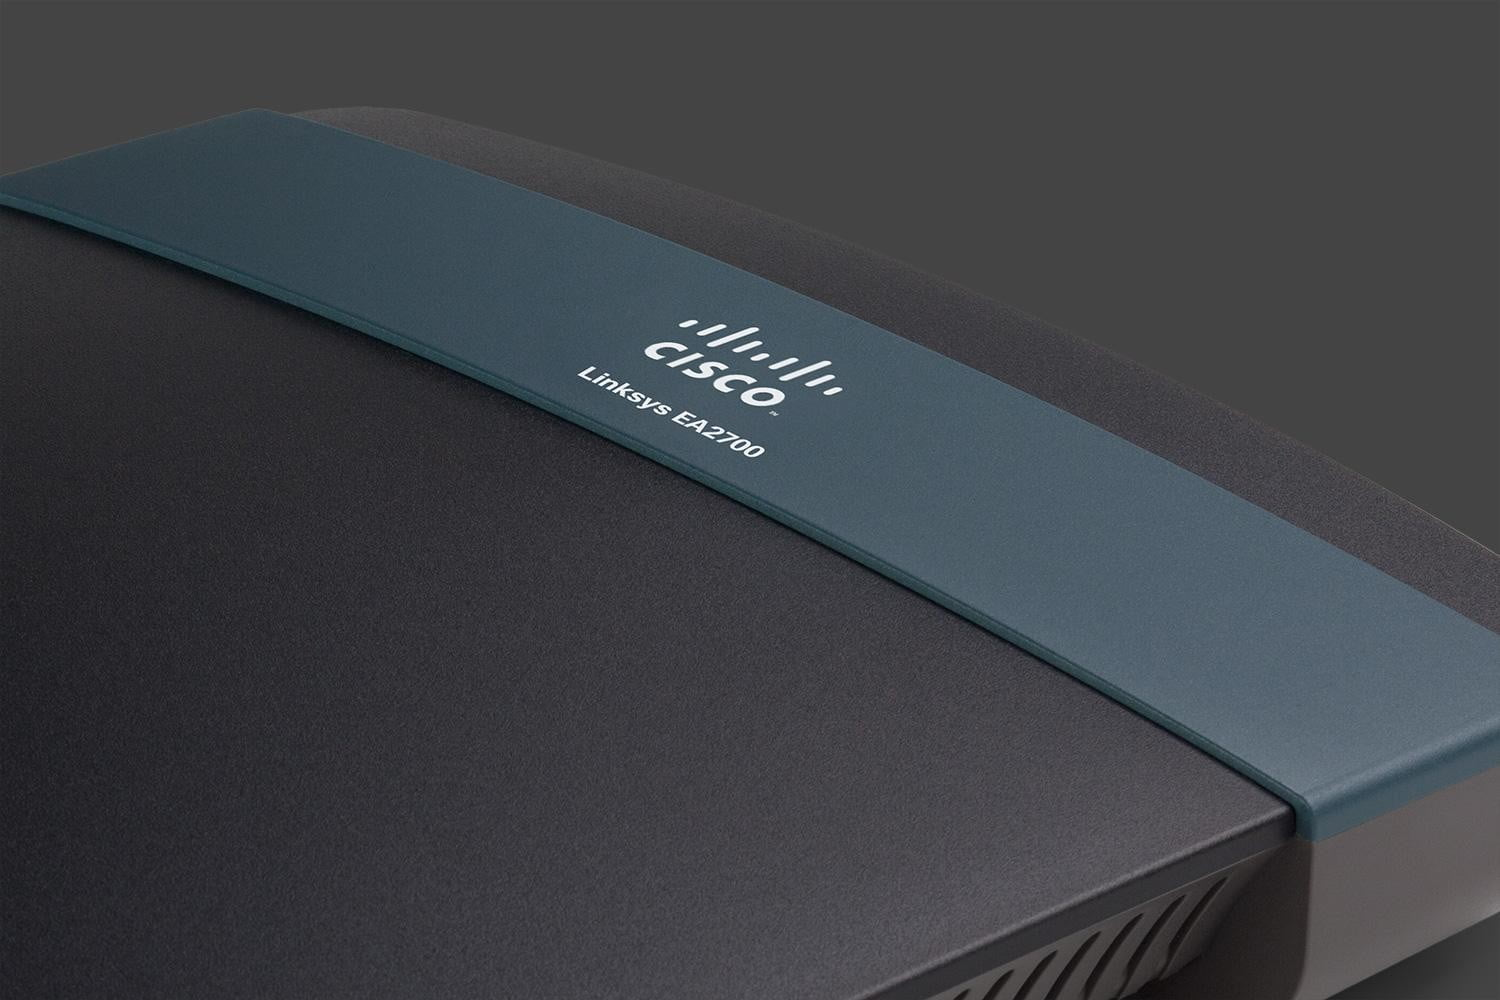 How To Protect Your Linksys Router From Themoon Malware Digital Trends Cisco E1000 Wireless N